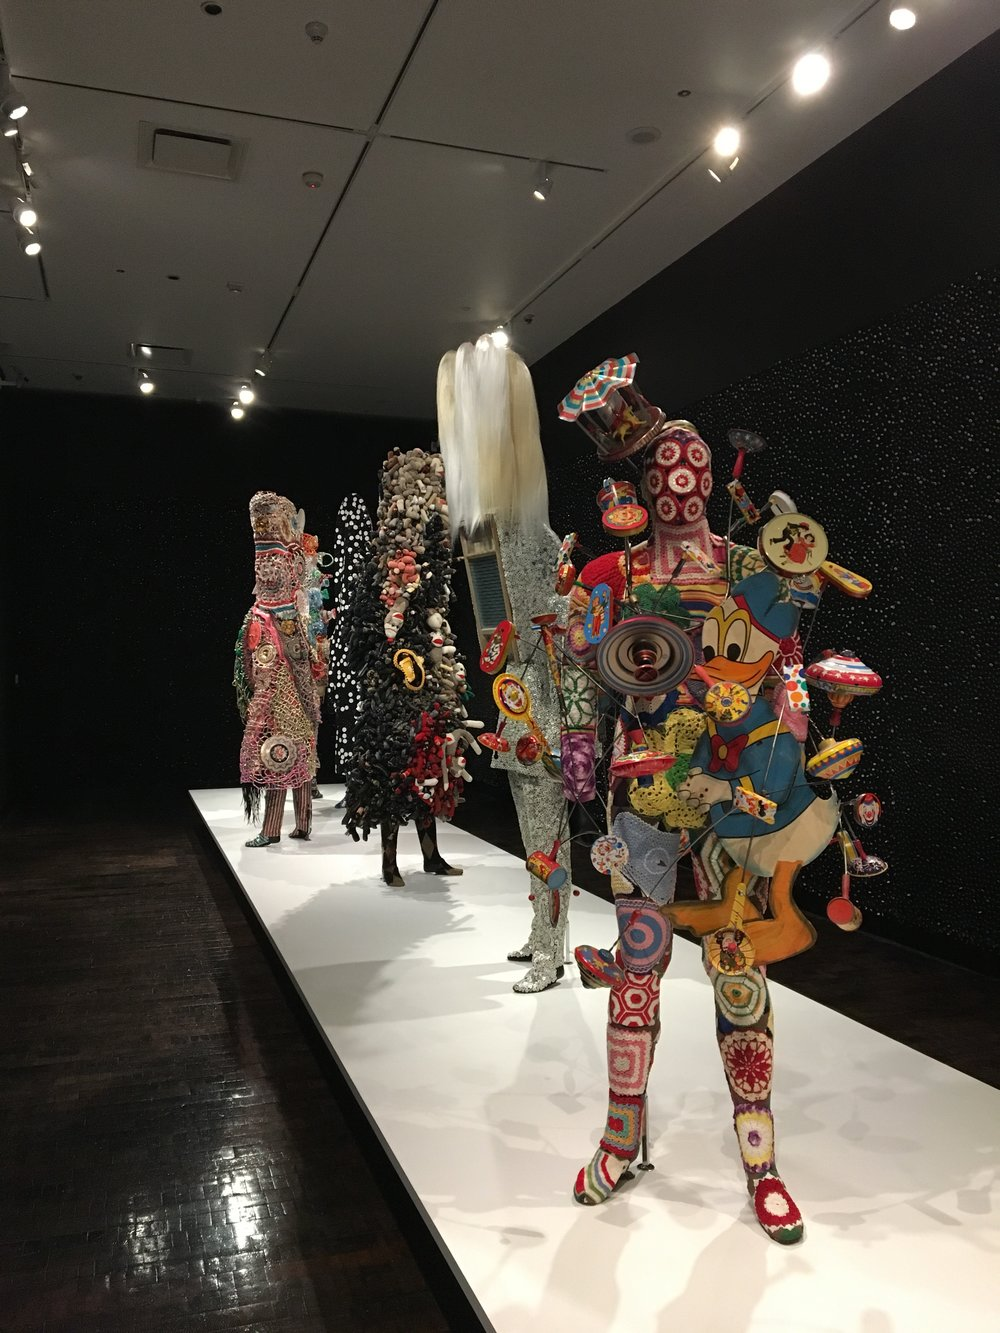 (Front sculpture) Nick Cave,  Soundsuit , 2016, mixed media, including vintage toys, wire, metal, and mannequin. Courtesy of the Lewis Family.